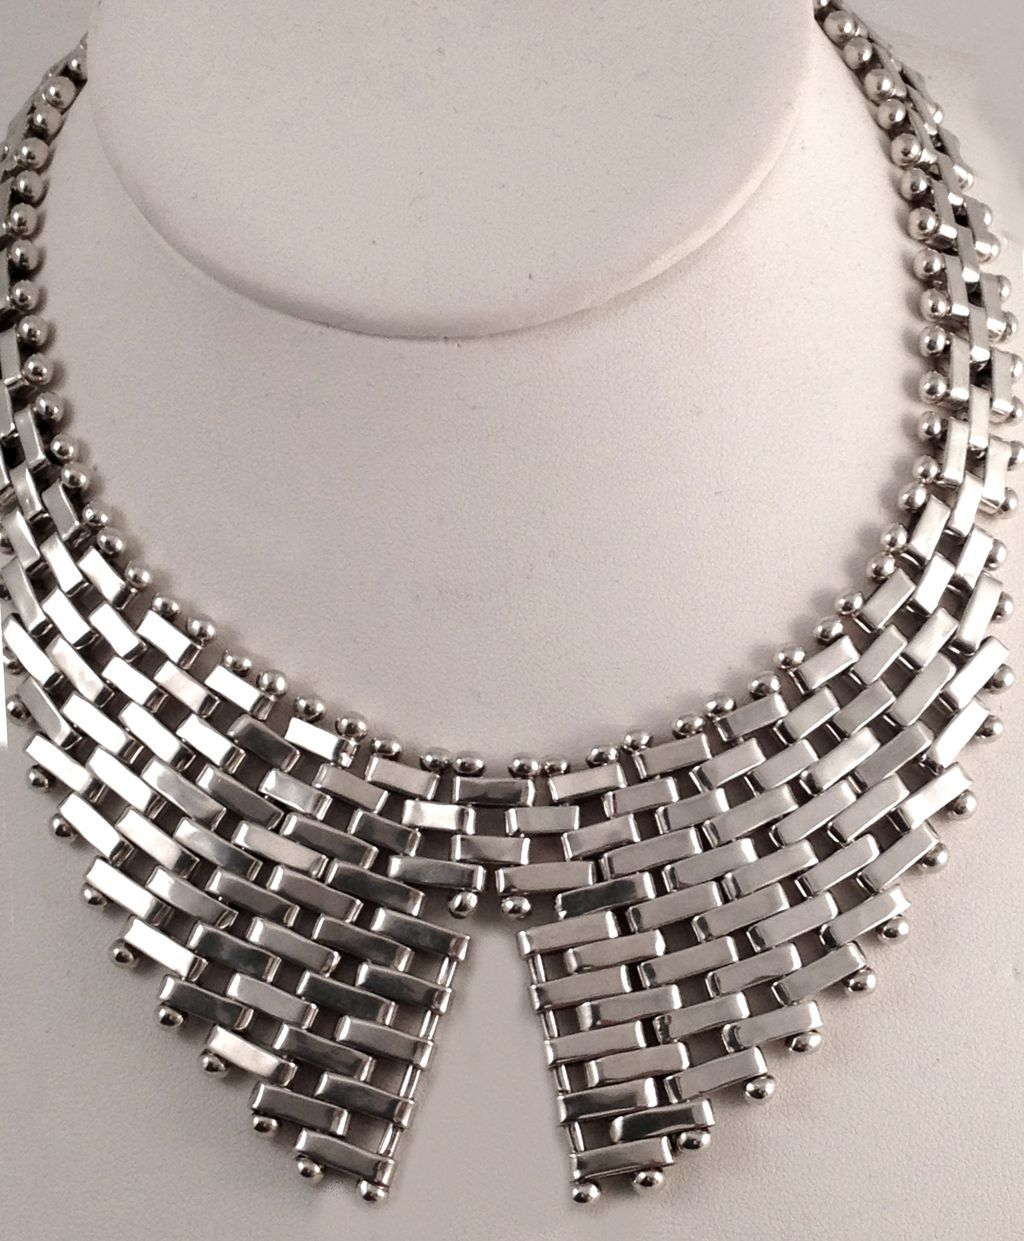 Vintage Modernist Necklace Signed Jondell Ent Inc Mexico Sterling Silver Ca 1960s Modernist Jewelry Jewelry Inspiration Art Jewelry Design